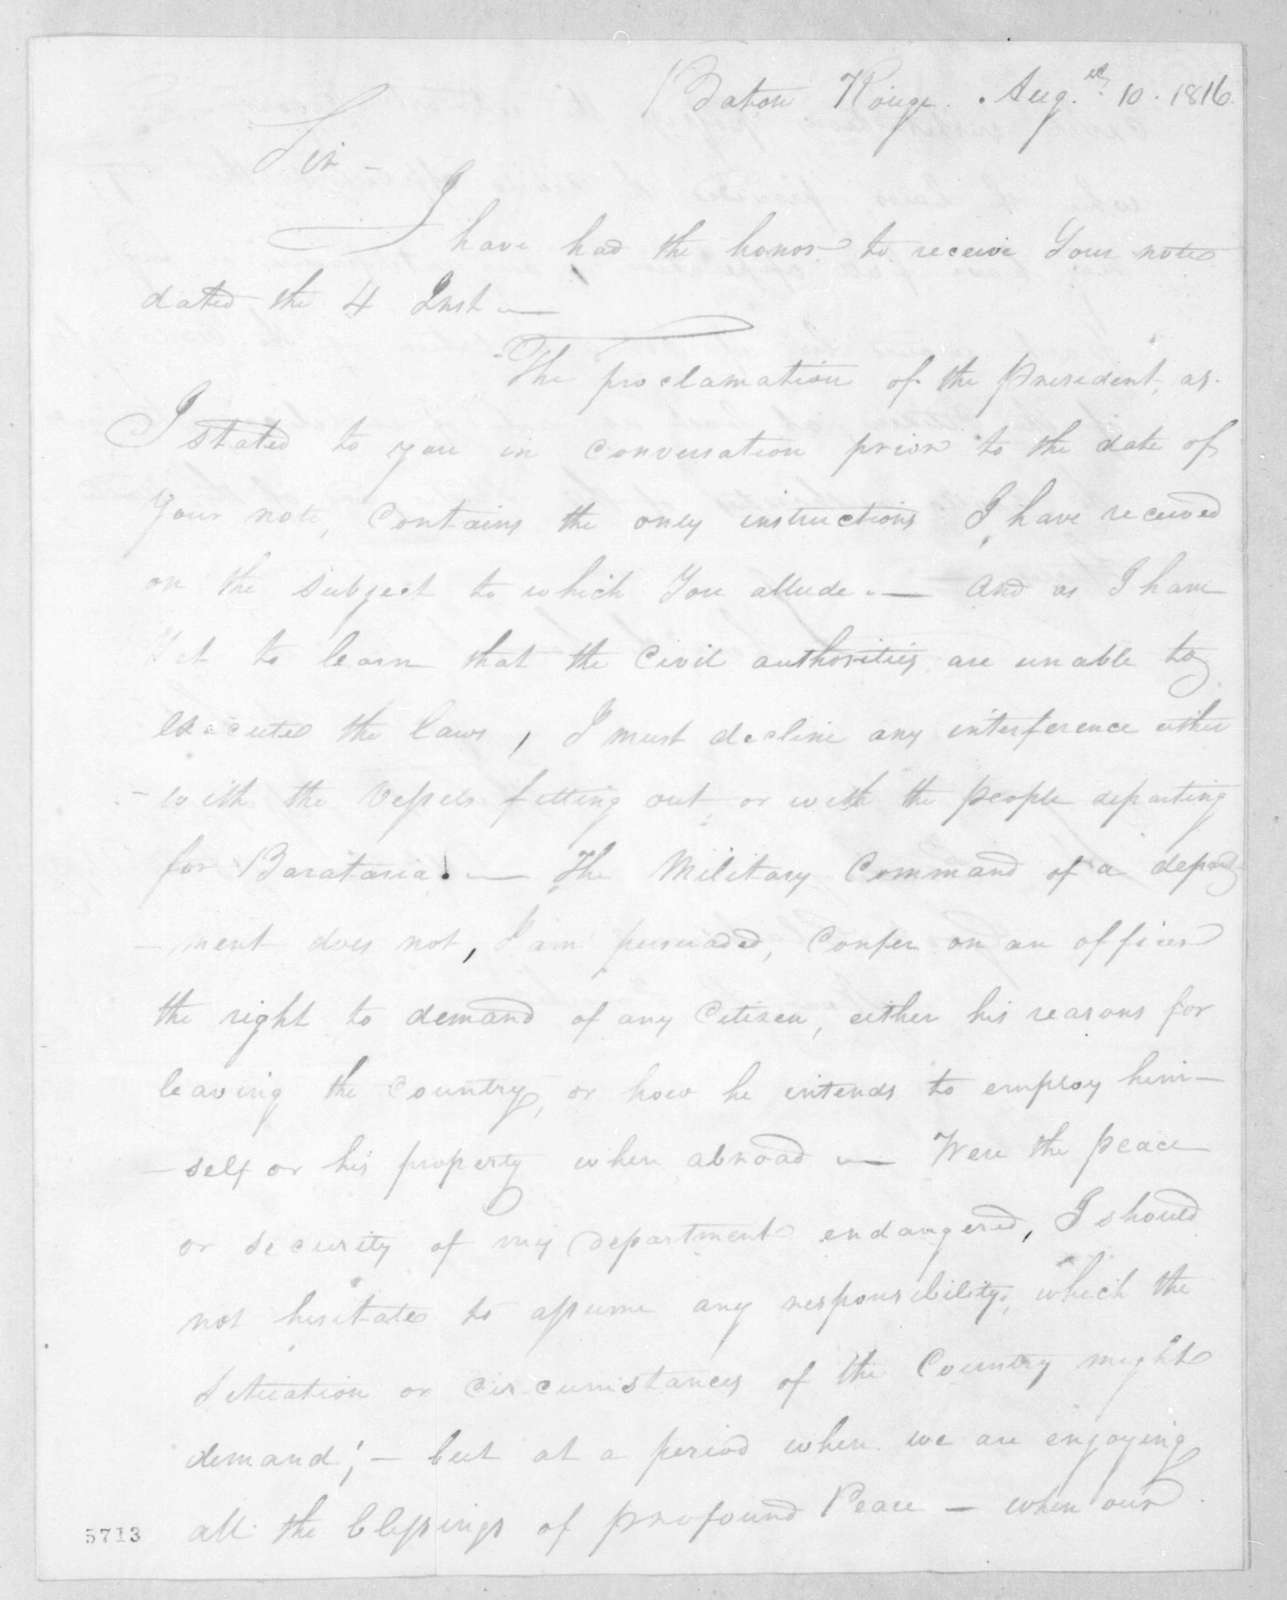 Thomas Sidney Jesup to William Charles Cole Claiborne, August 10, 1816